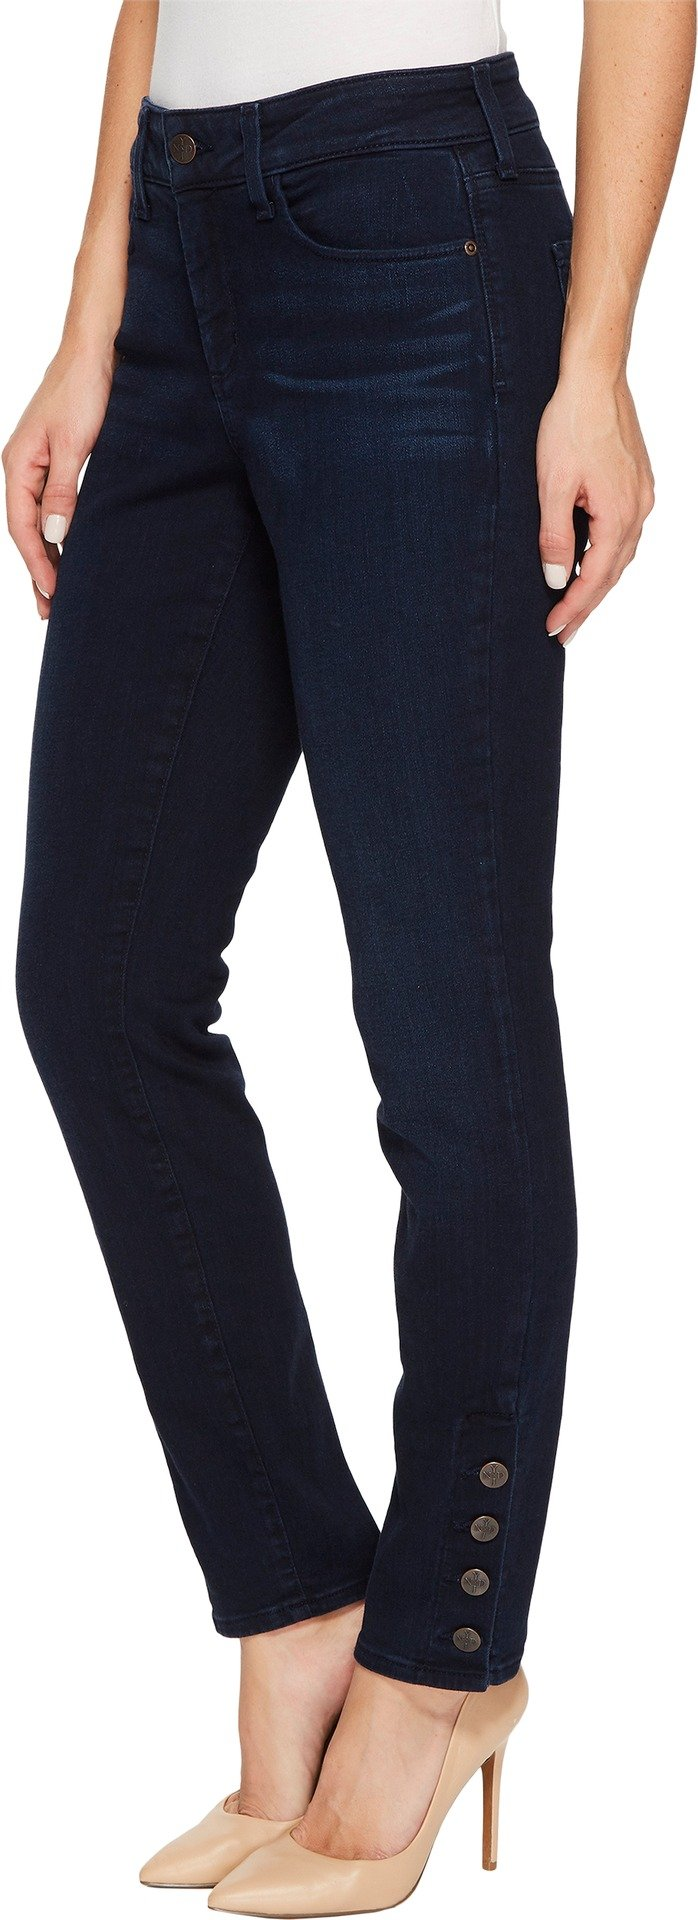 NYDJ Women's Ami Skinny Legging Jeans, Sinclair with Exposed Sideseam Buttons, 8